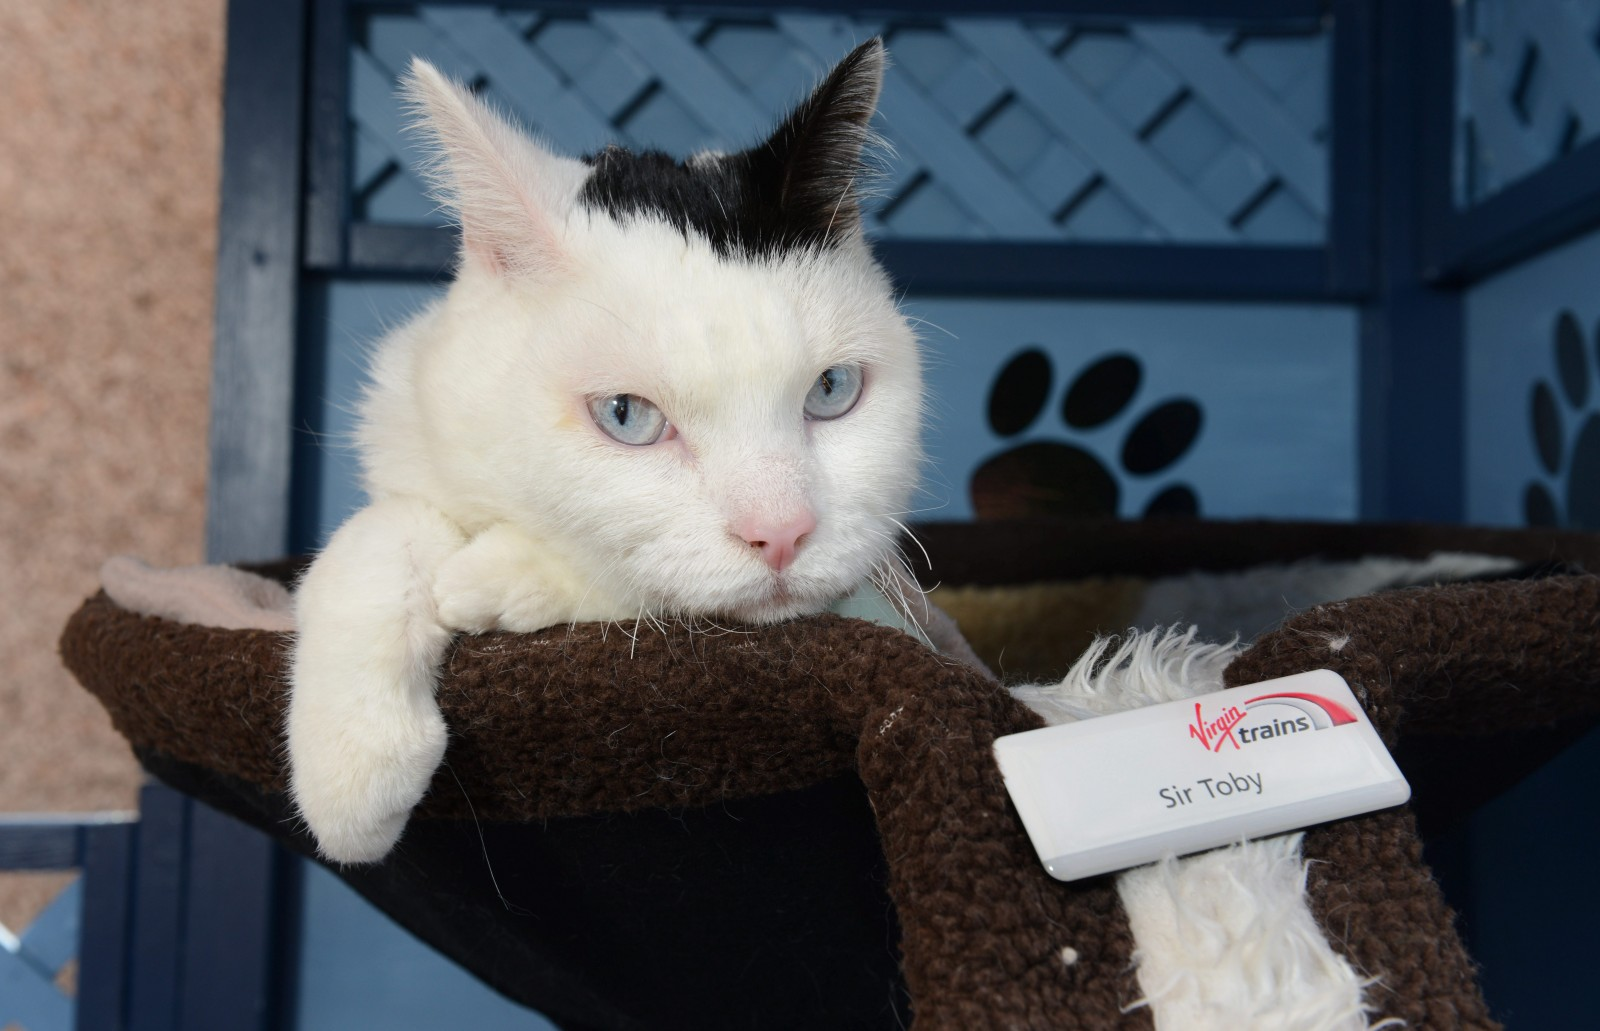 Meet Sir Toby Toblerone! The quadriplegic cat recruited for a very special role on the railways